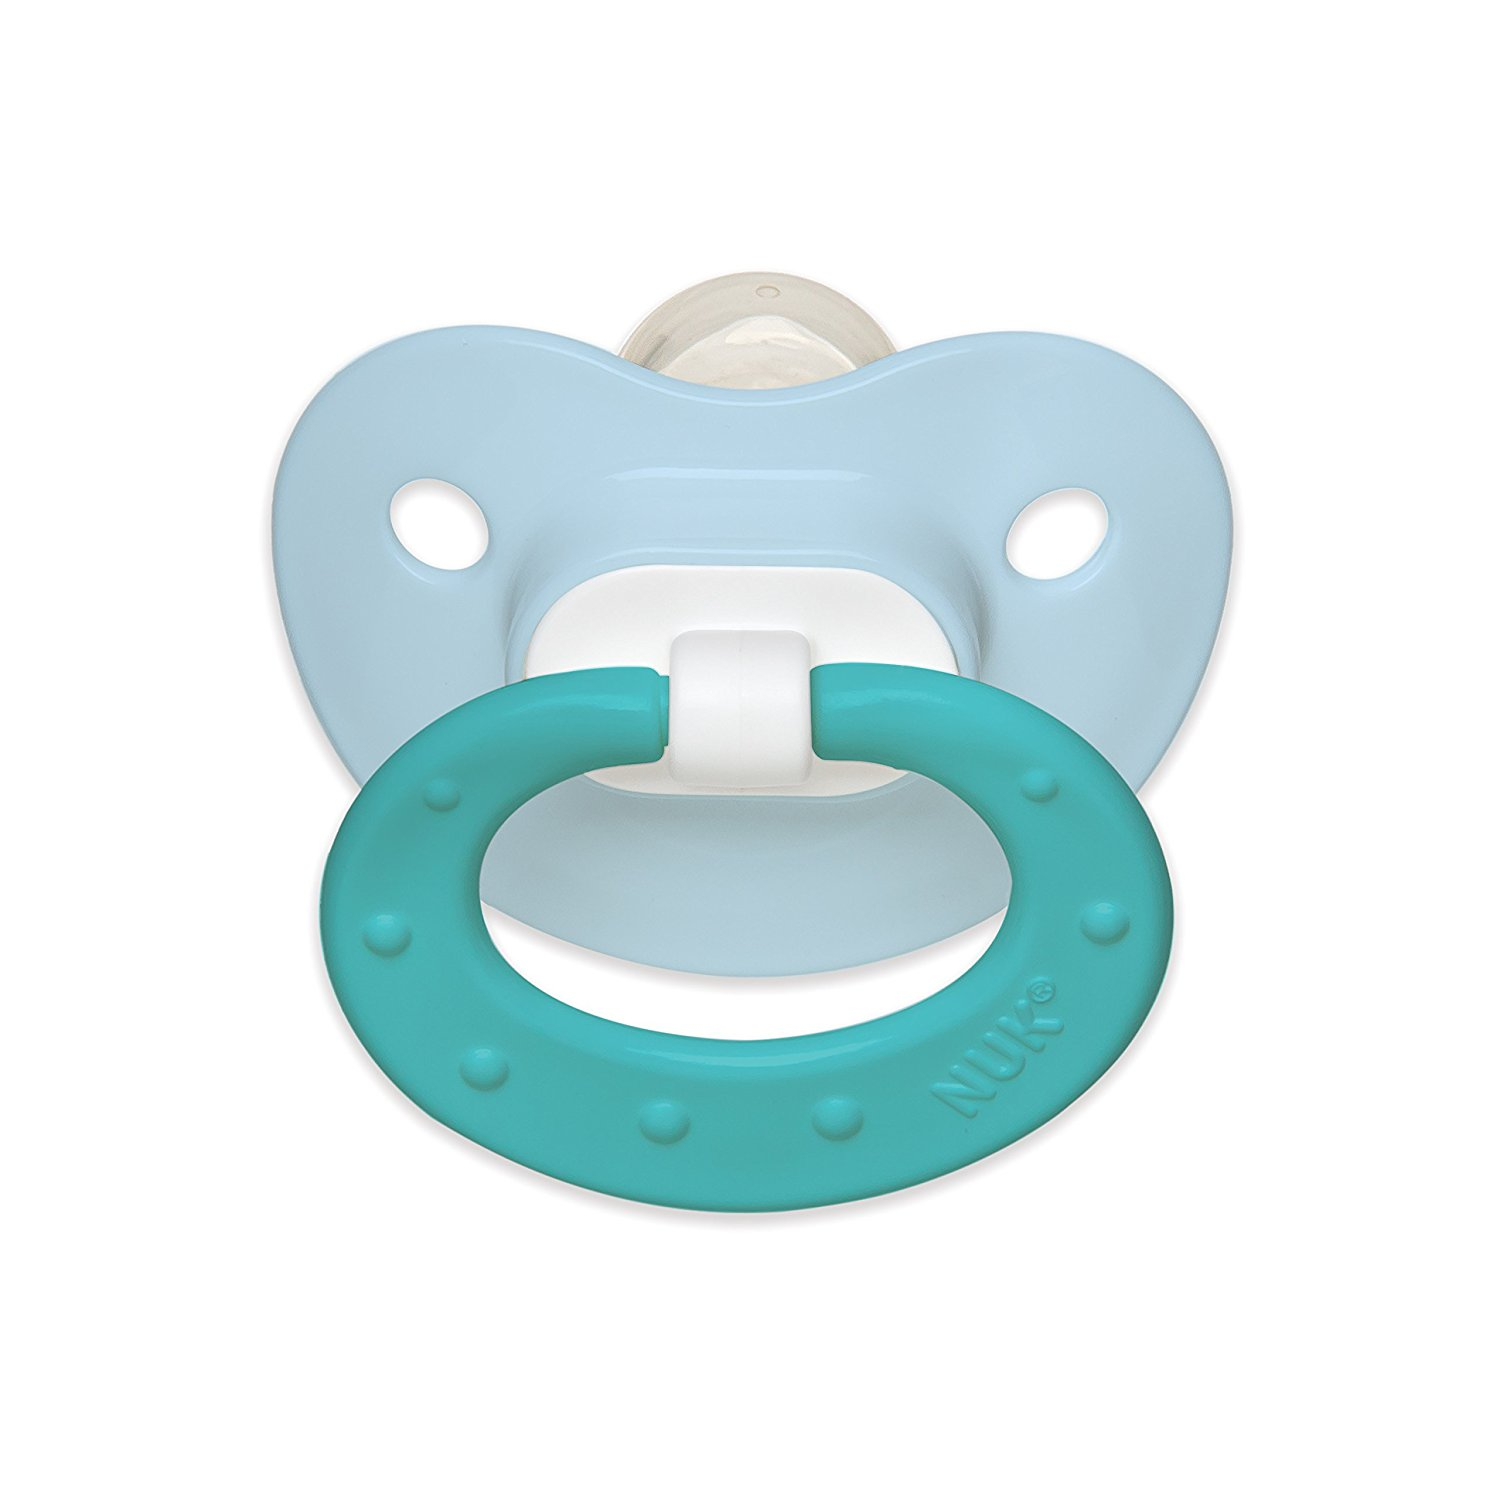 Nuk Juicy Silicone Orthodontic Pacifier - Juicy Puller Infant Pacifier, Variety of Age Ranges,  Colors and Designs Available